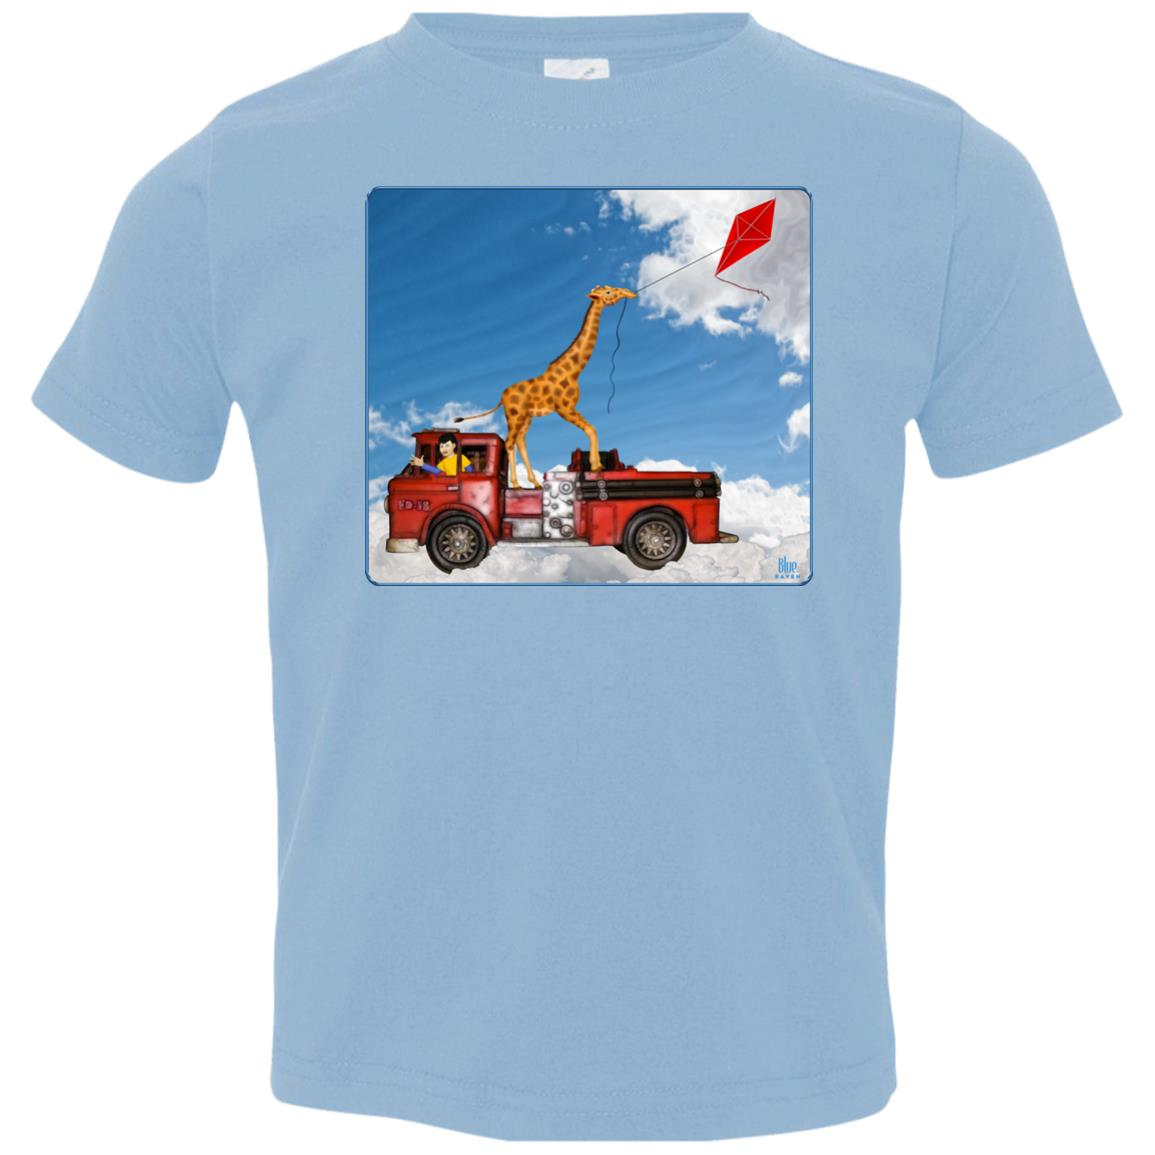 firetruck fun - Premium Toddler T-Shirt